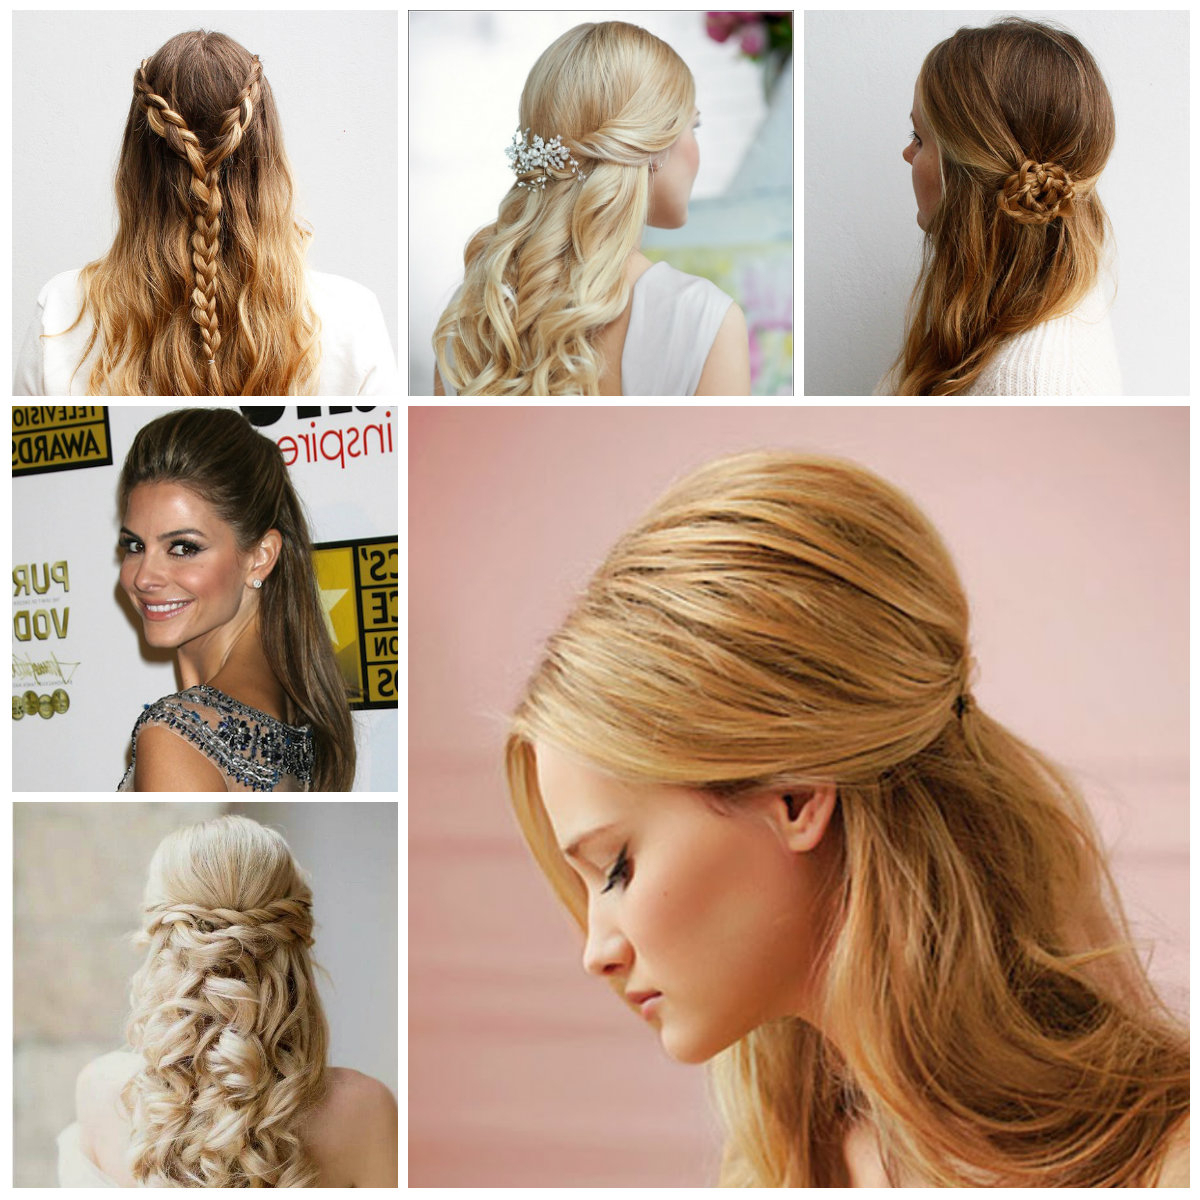 Hairstyles For Women (View 18 of 20)